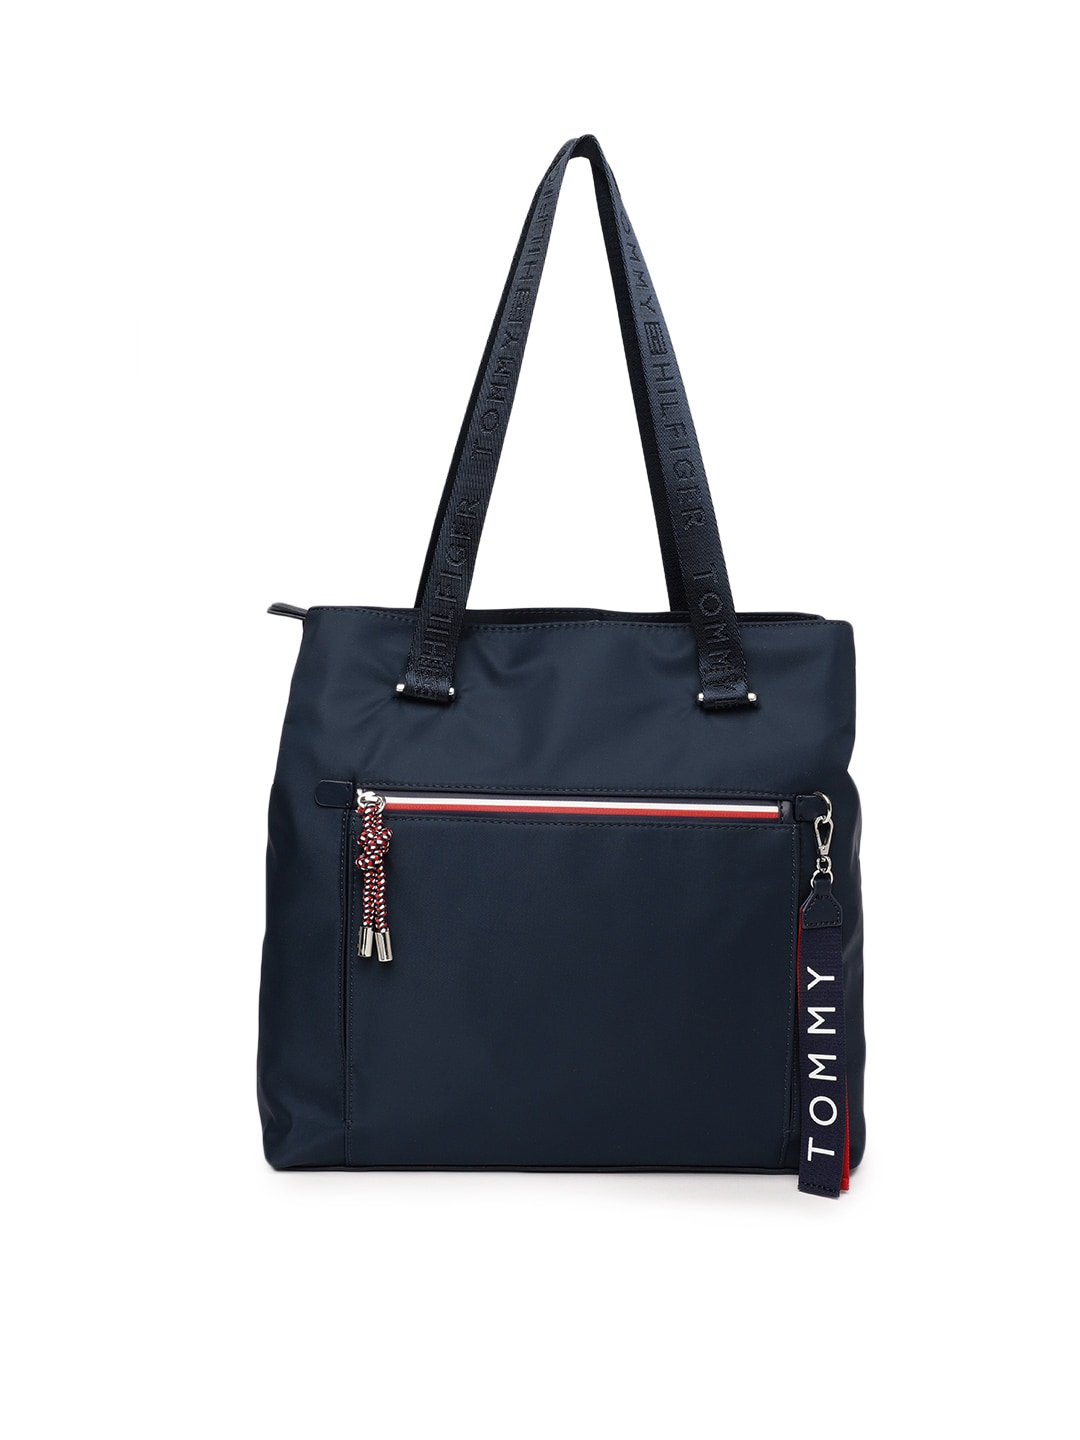 Women Tommy Hilfiger Bags - Buy Women Tommy Hilfiger Bags online in India e5a002d9cf454